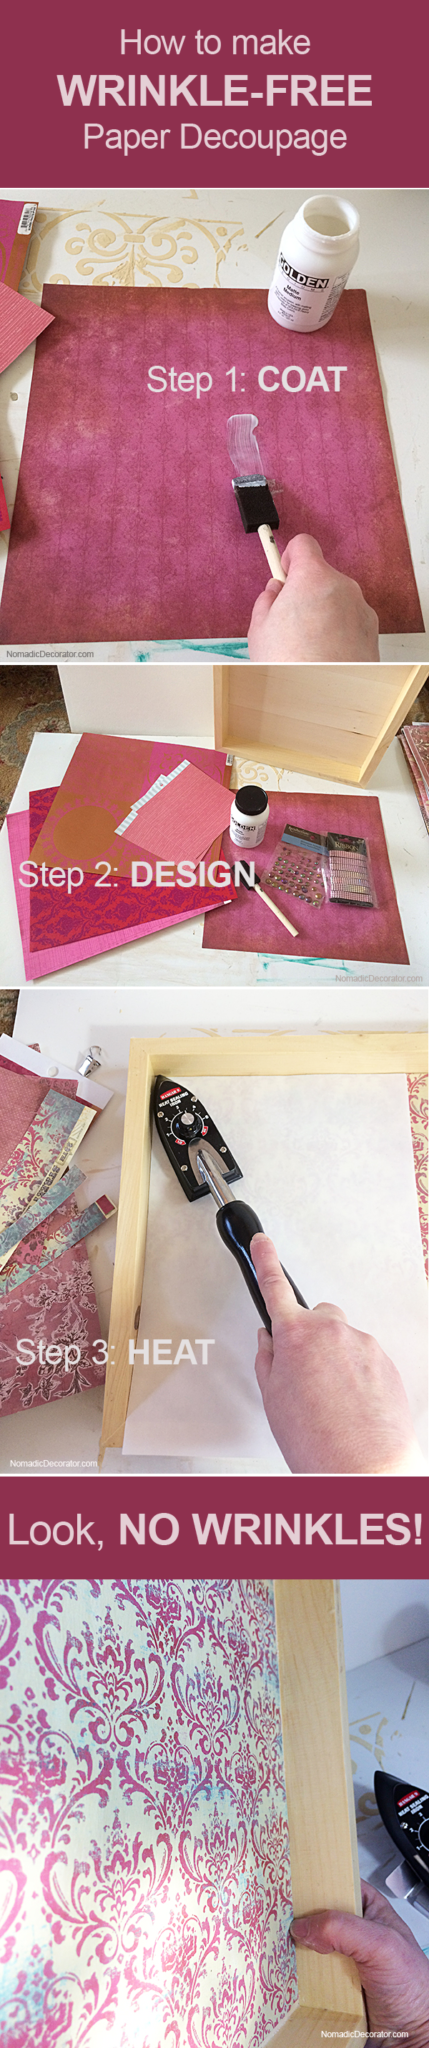 How to Make Wrinkle Free Paper Decoupage Collage